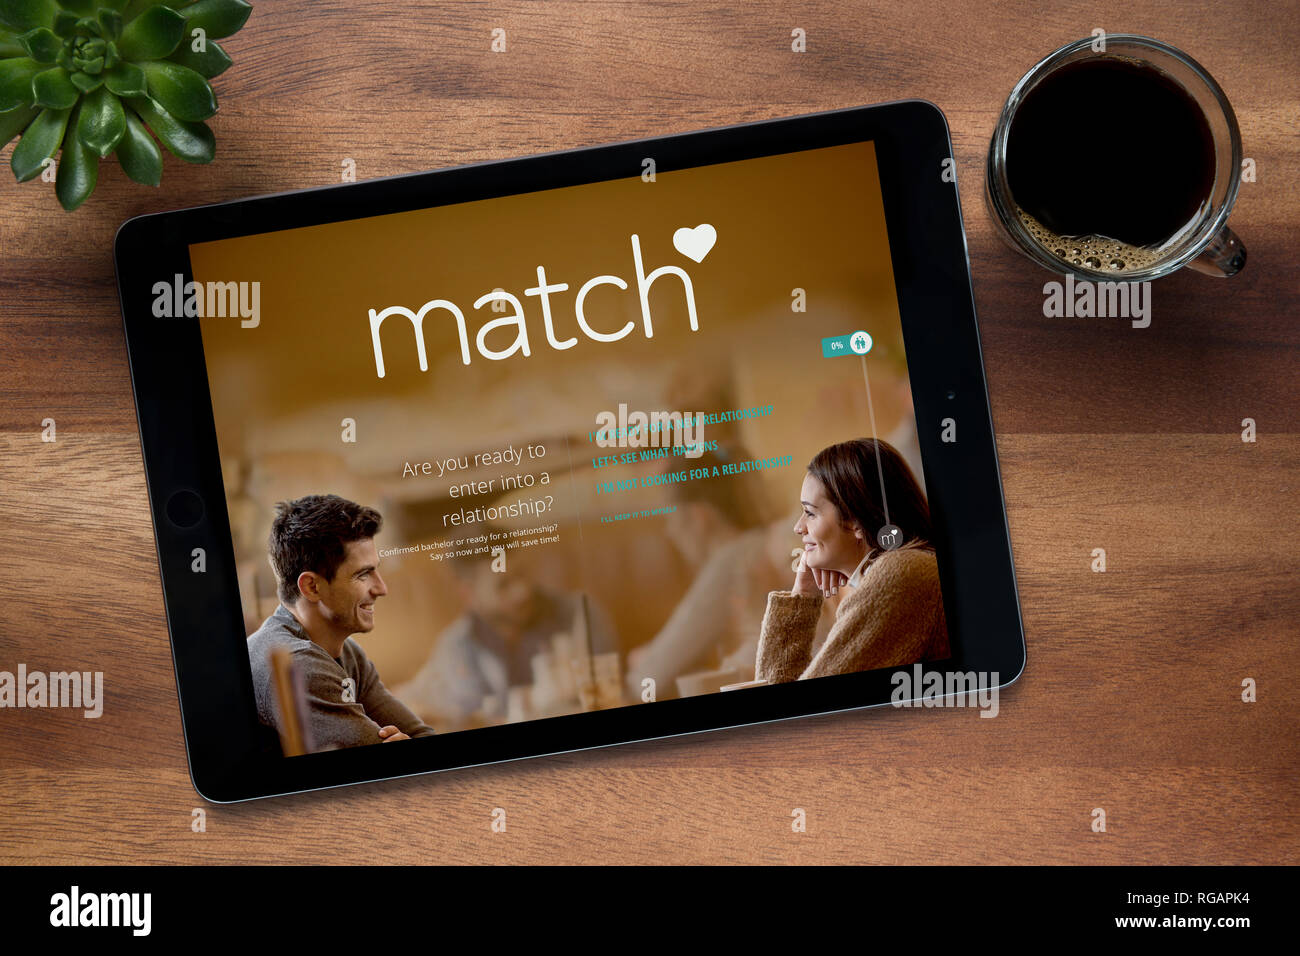 The website of Match.com is seen on an iPad tablet, on a wooden table along with an espresso coffee and a house plant (Editorial use only). - Stock Image